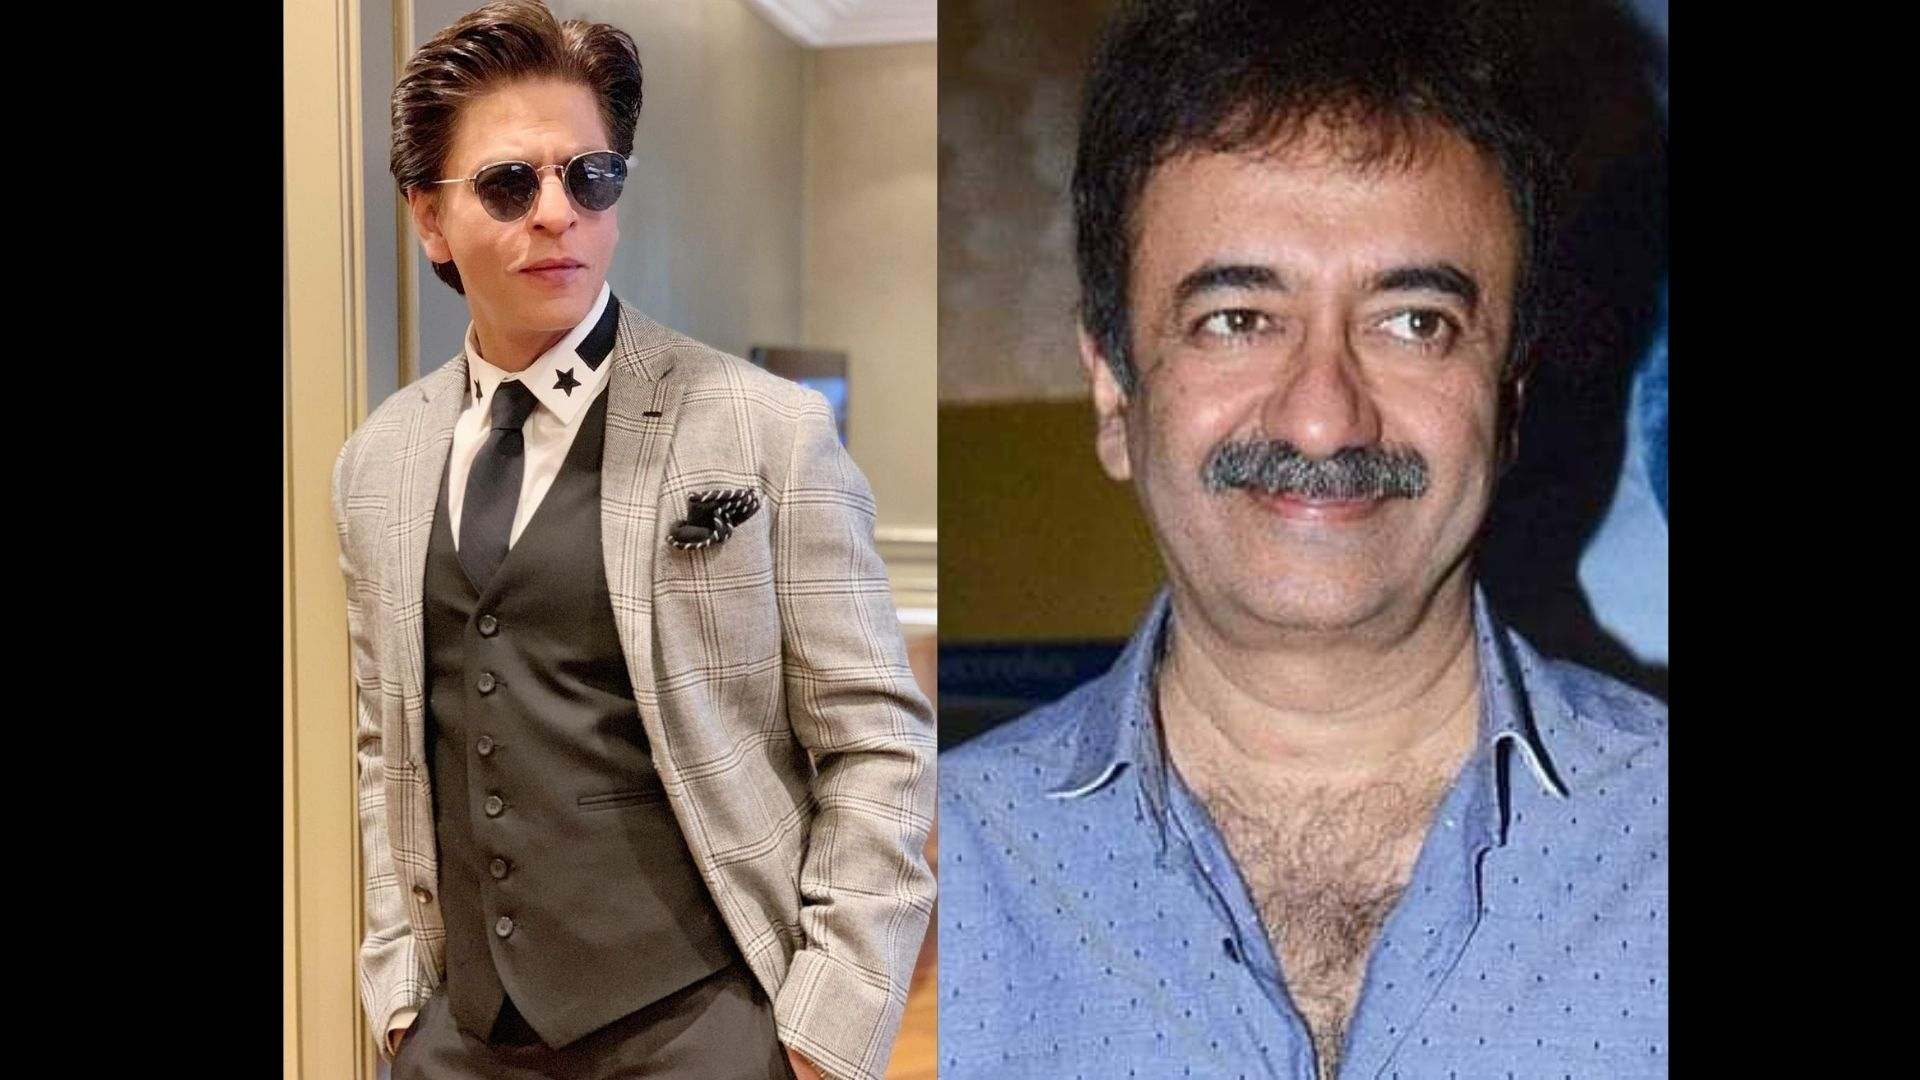 Shah Rukh Khan And Rajkumar Hirani's Next Project To Go On The Floors Soon; Touted To Be An Entertaining Comedy Flick